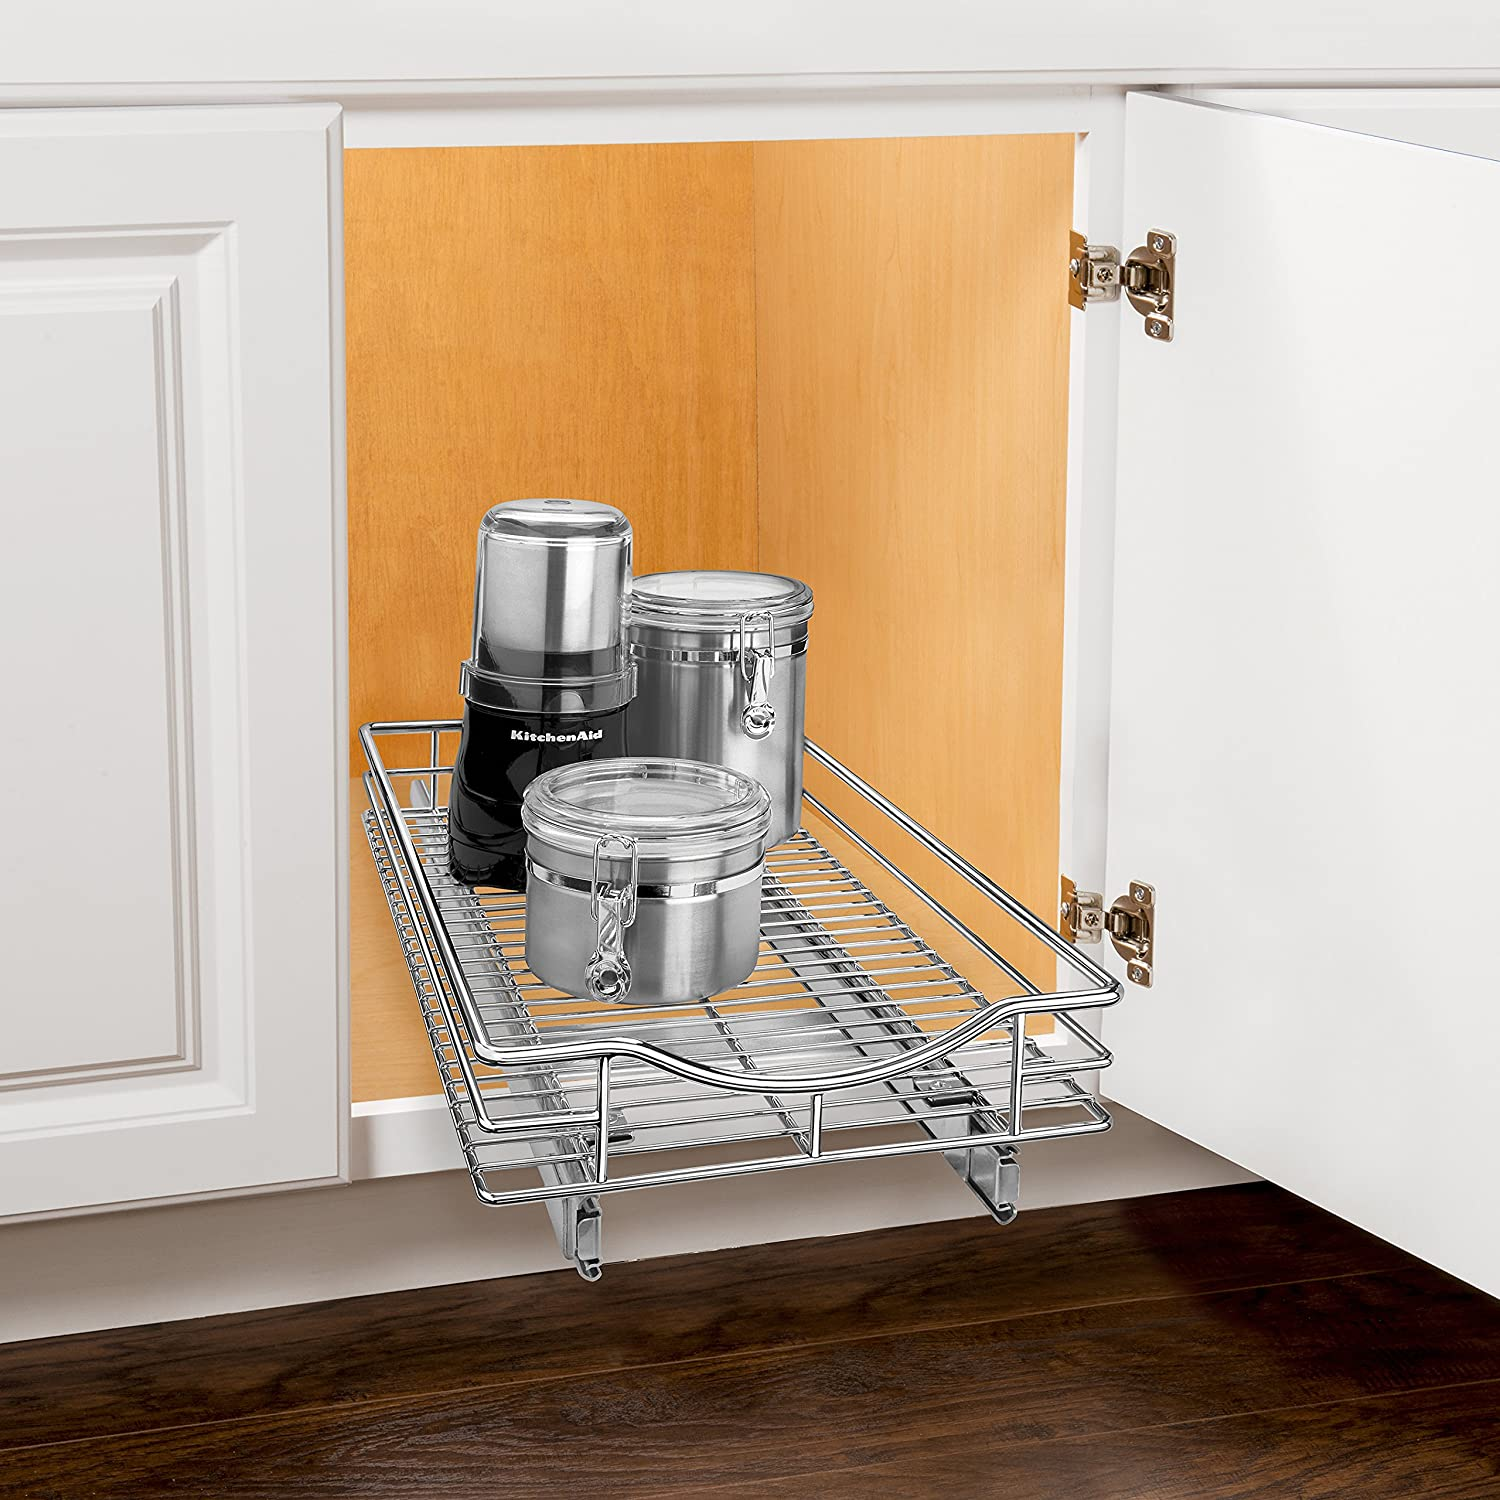 Amazon.com: Lynk Professional Slide Out Cabinet Organizer   Pull Out Under  Cabinet Sliding Shelf: Home U0026 Kitchen